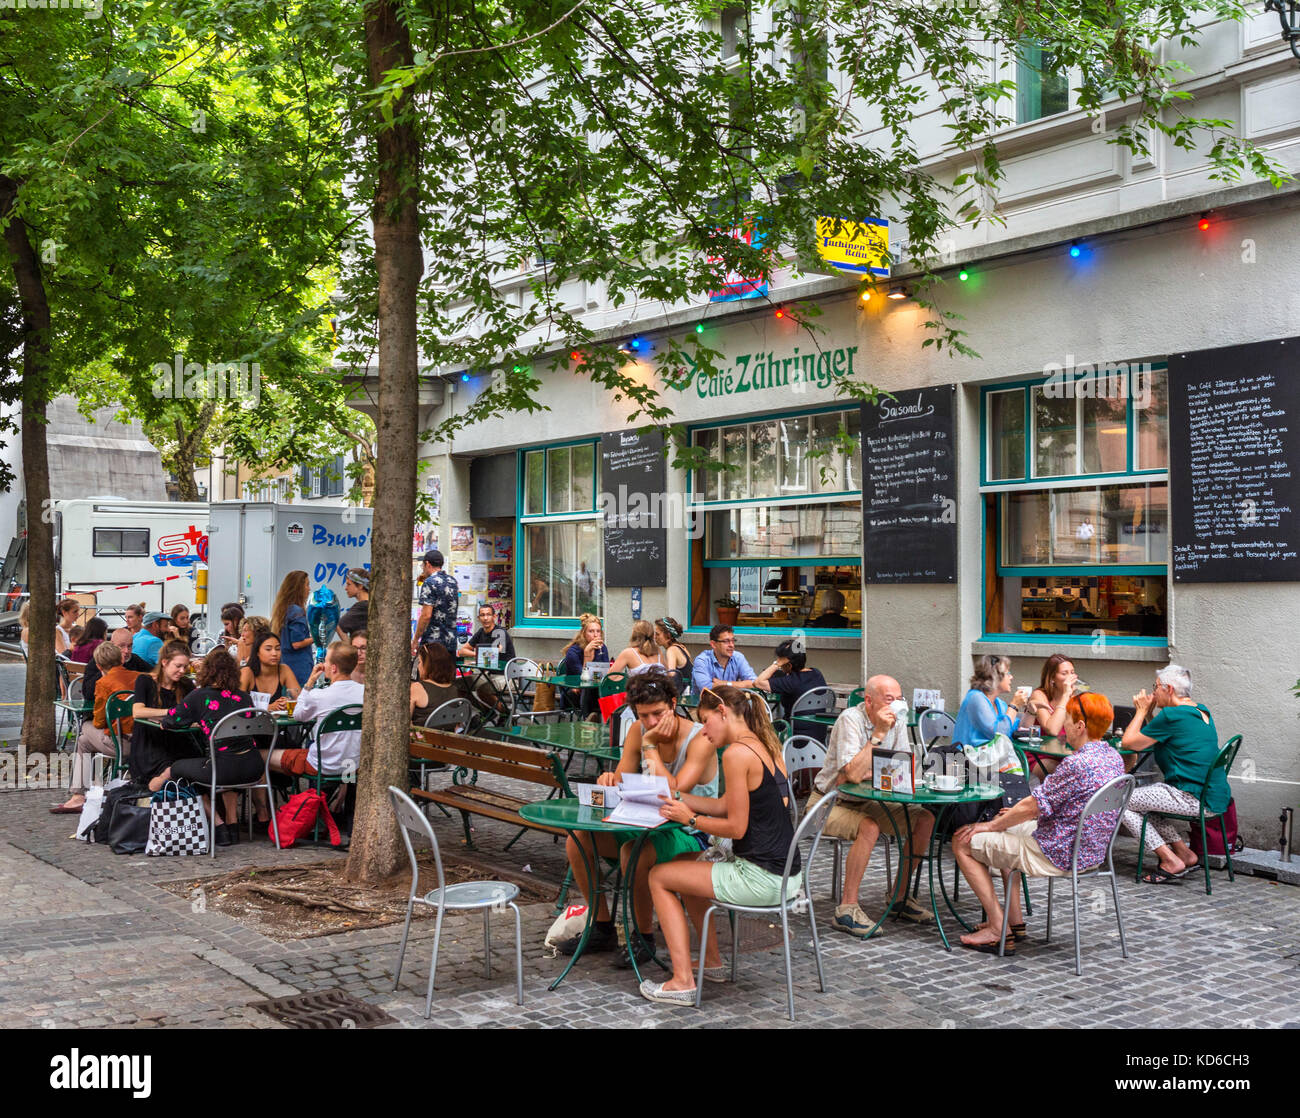 Cafe Zahringer on Spitalgasse in the historic Niederdorf district, Zürich, Switzerland - Stock Image